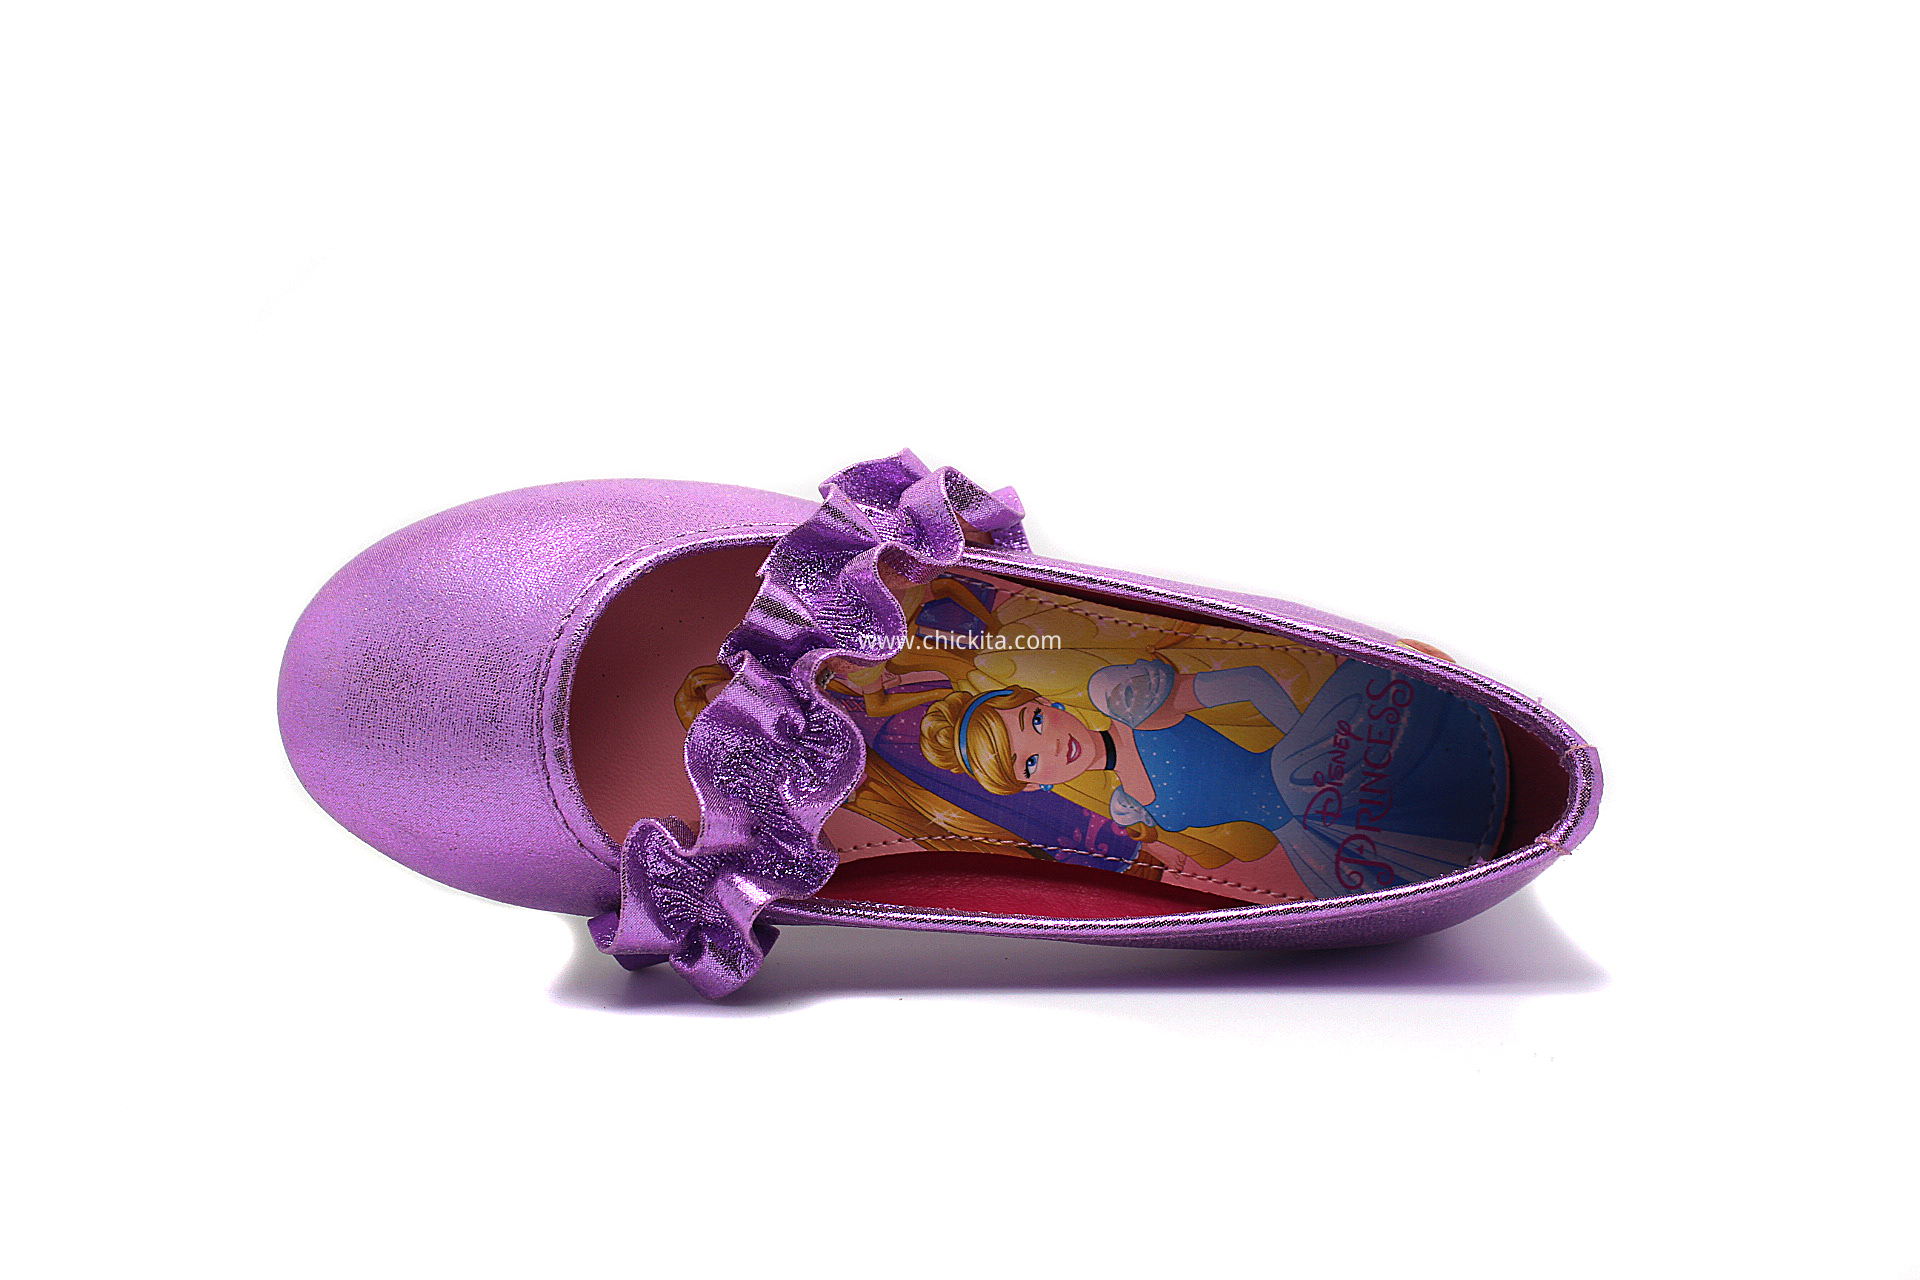 Disney shoes & Barbie shoes